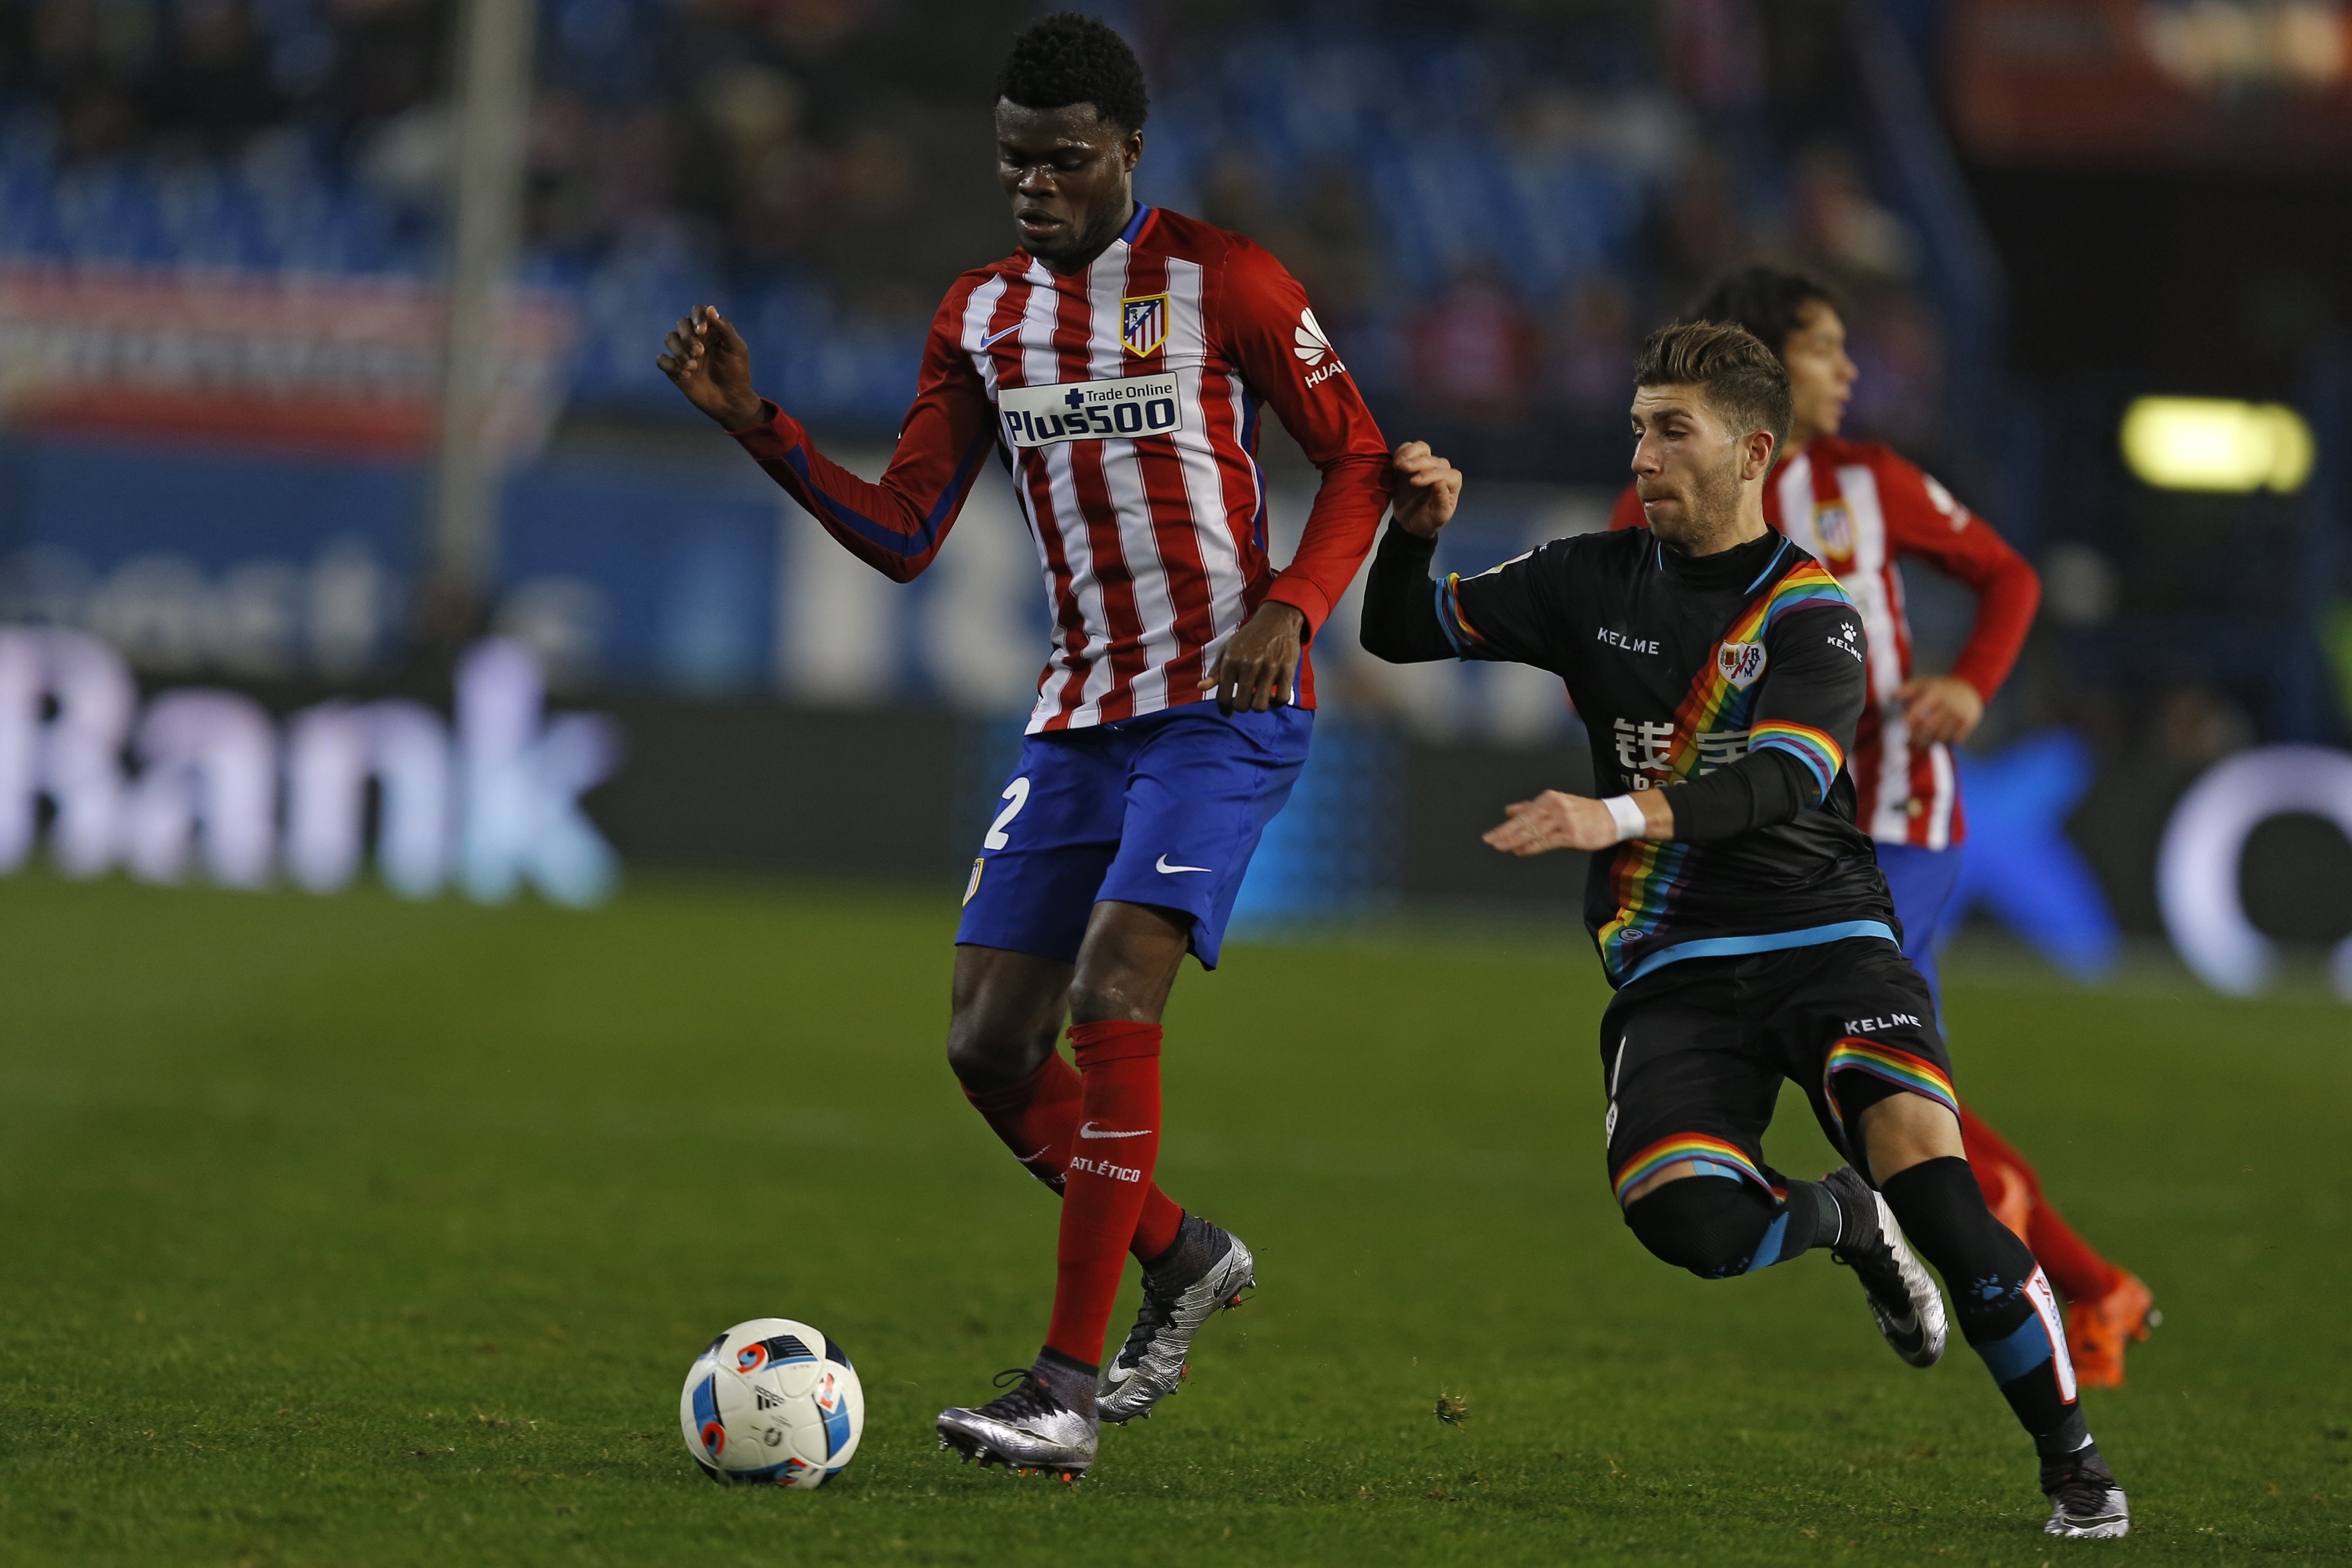 Atletico Madrid's Thomas Partey, left, tussles for the ball with Rayo Vallecano's Adrian Embarba during the Copa del Rey second leg soccer match between Atletico Madrid and Rayo Vallecano at the Vicente Calderon stadium, in Madrid, Thursday, Jan. 14, 2016. Atletico Madrid won 4-1 on aggregate and moved to the next round. (AP Photo/Francisco Seco)